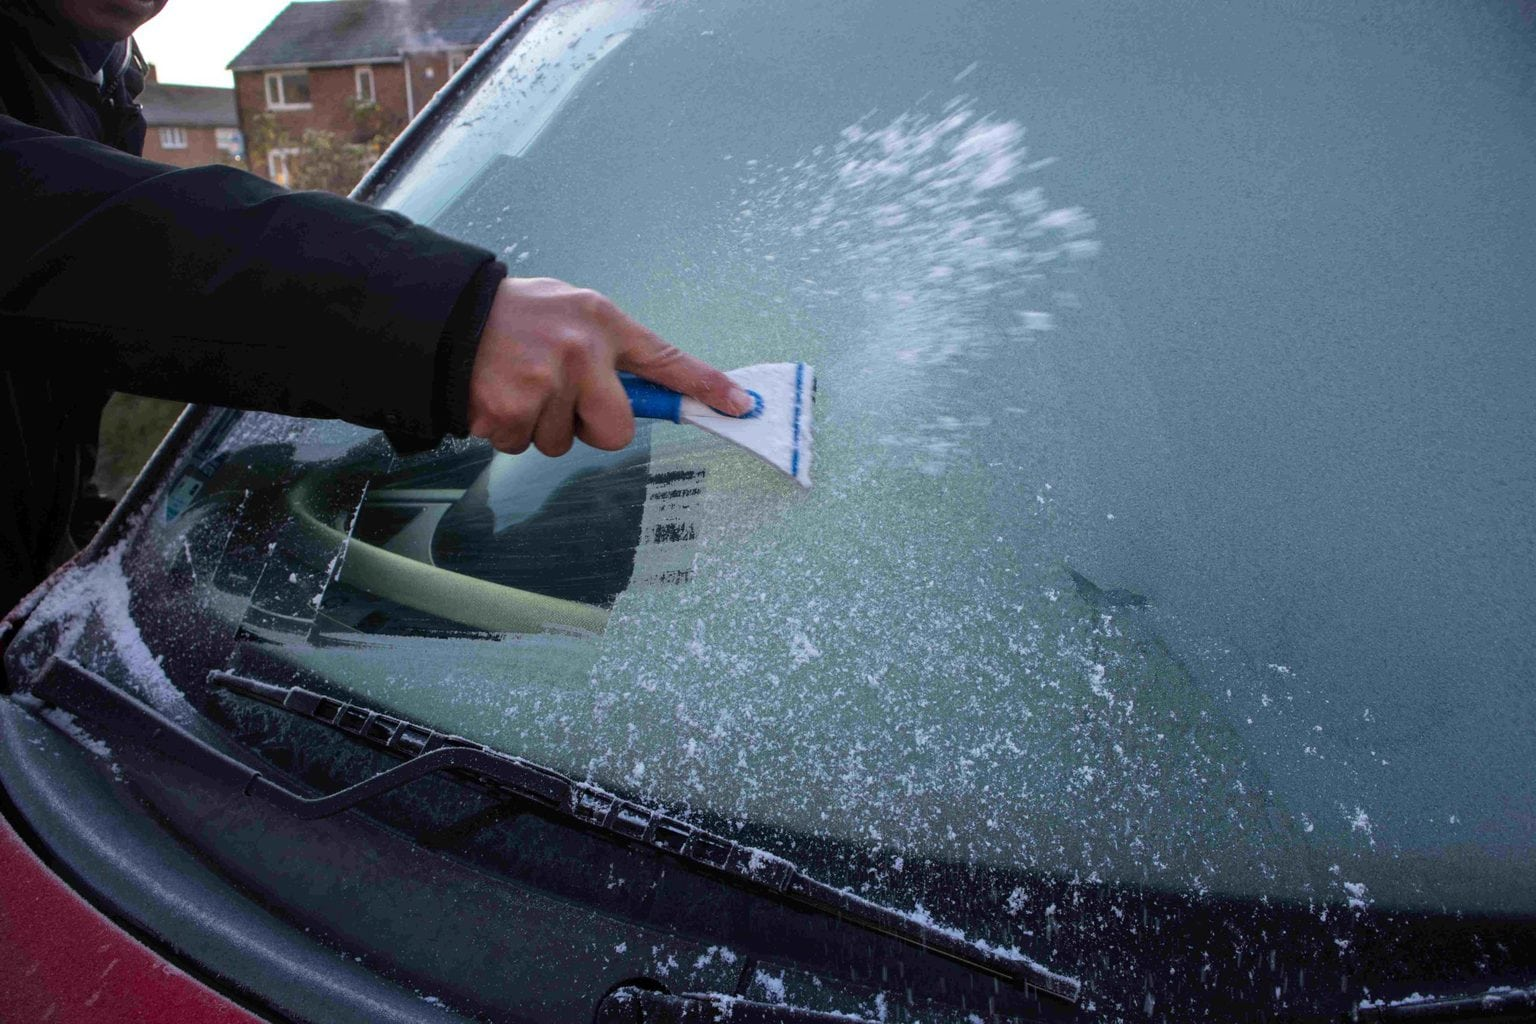 De-icing the windscreen of a car. This is an important winter driving safety tip for employees.